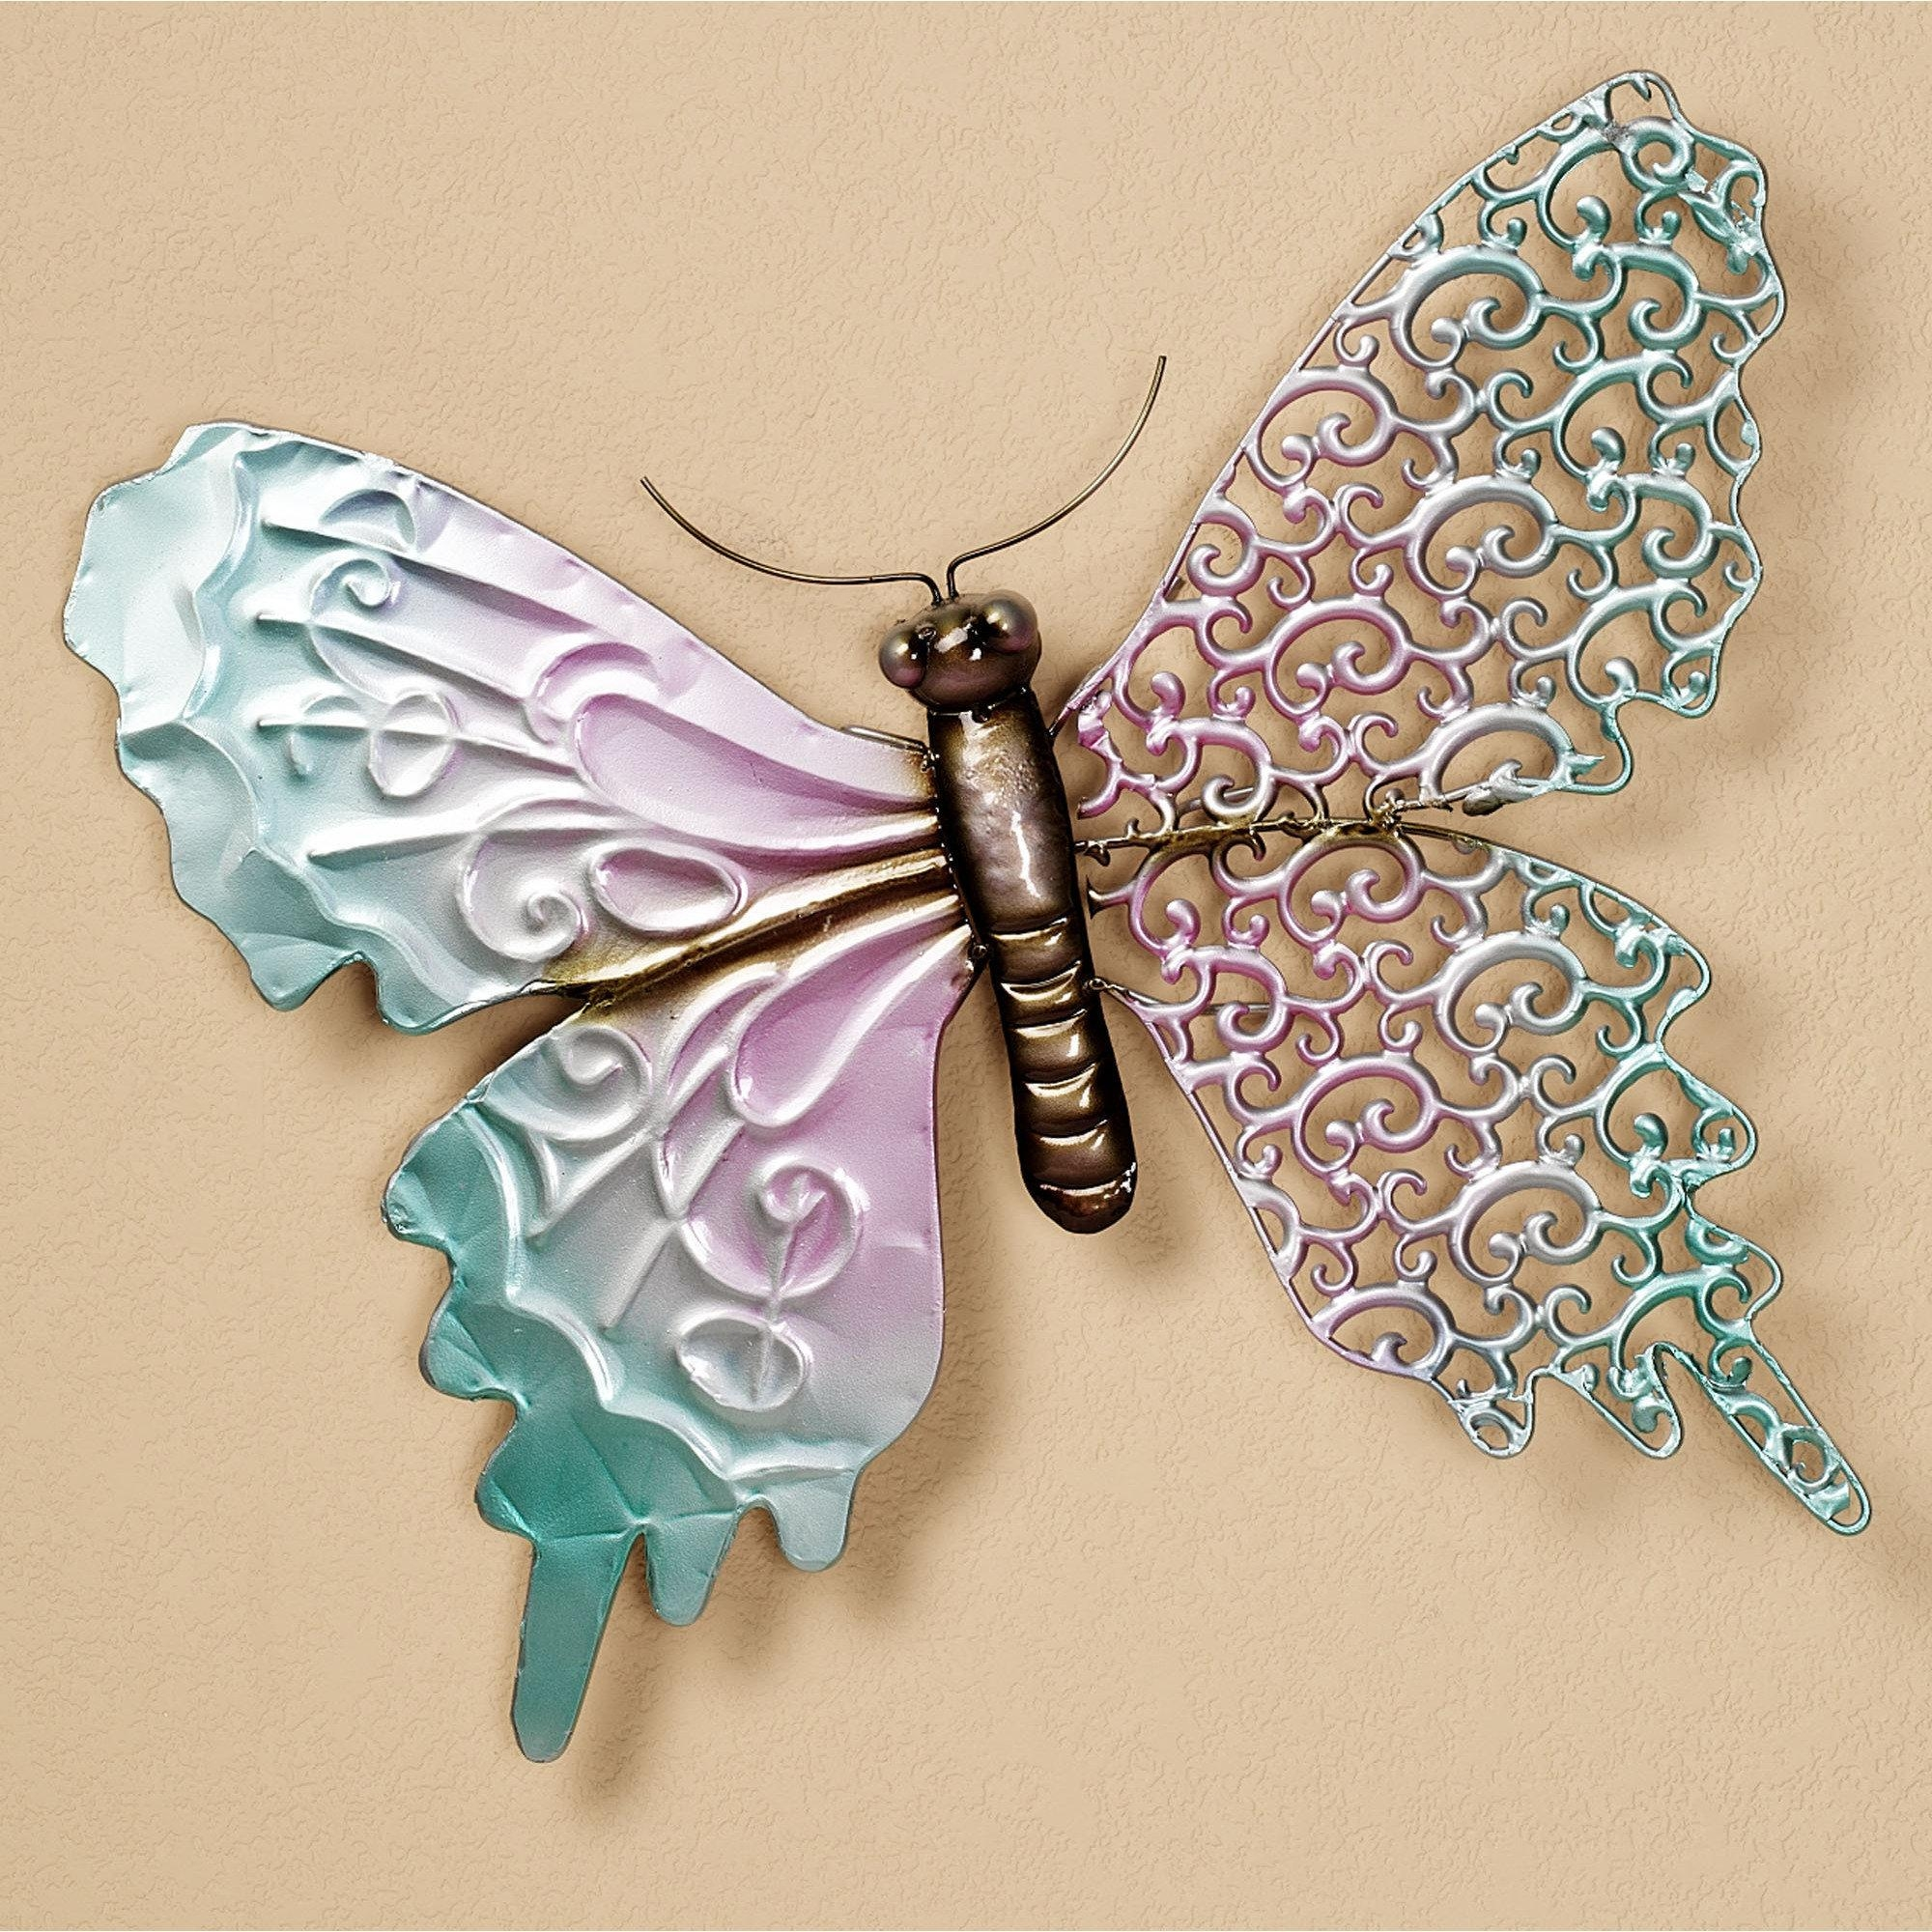 Wall Art Ideas Design : Acid Soldier Metal Butterfly Wall Art With White Metal Butterfly Wall Art (Image 11 of 20)